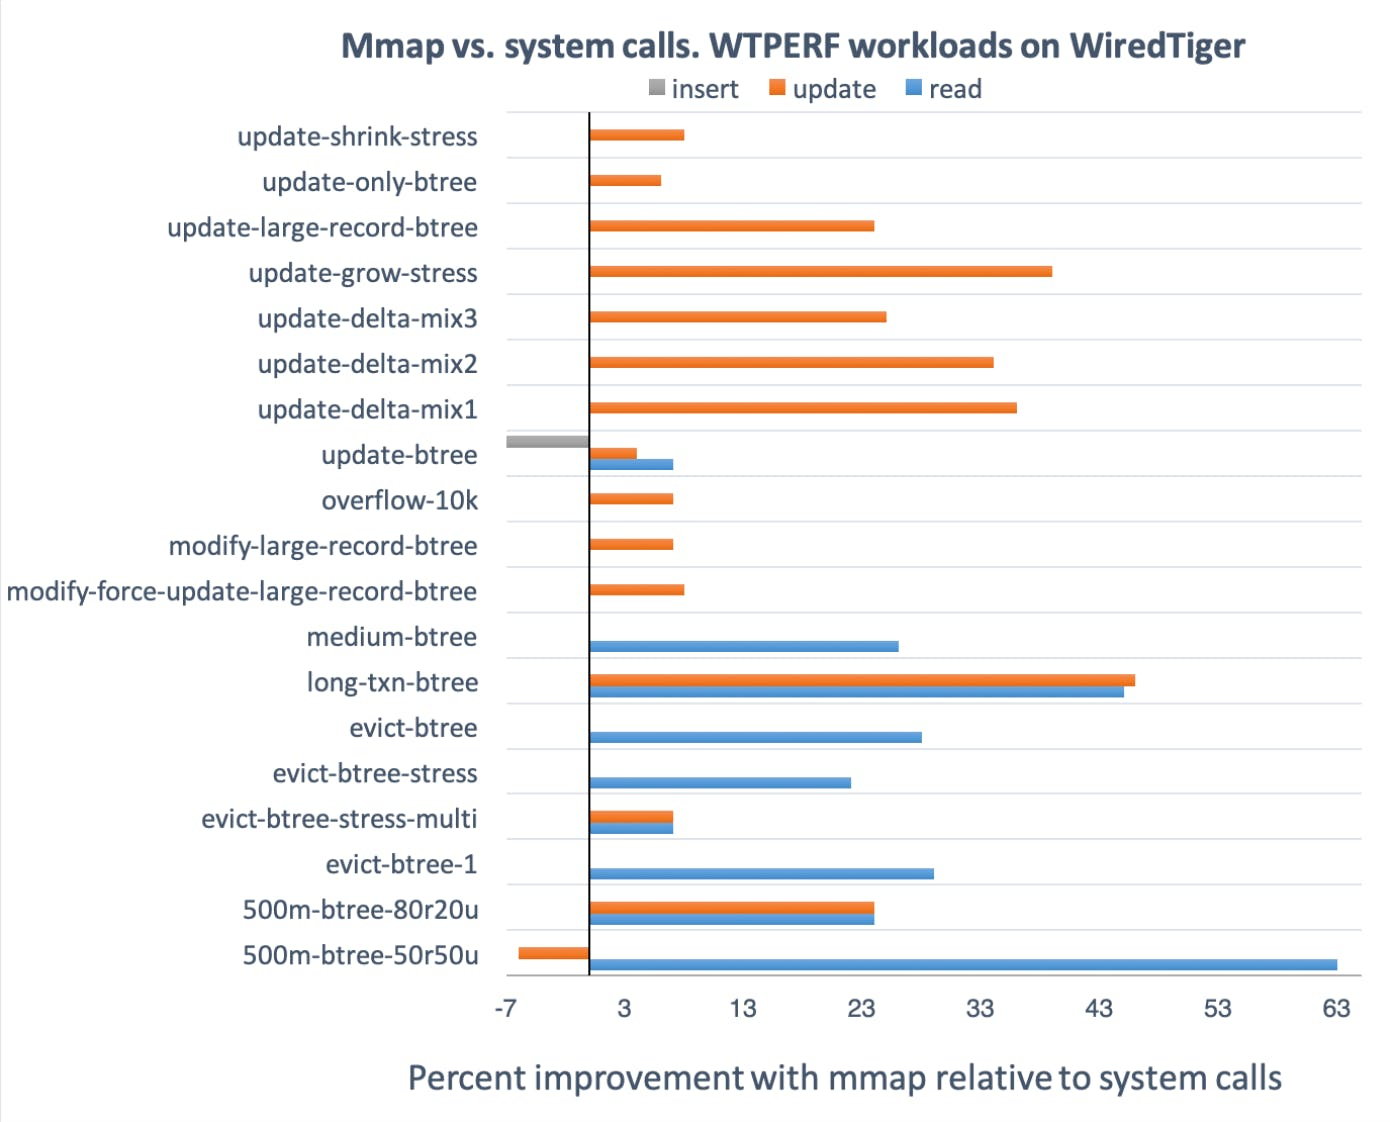 Mmap vs. system calls WTPERF workloads on Wired Tiger; percent improvement with mmap relative to system calls